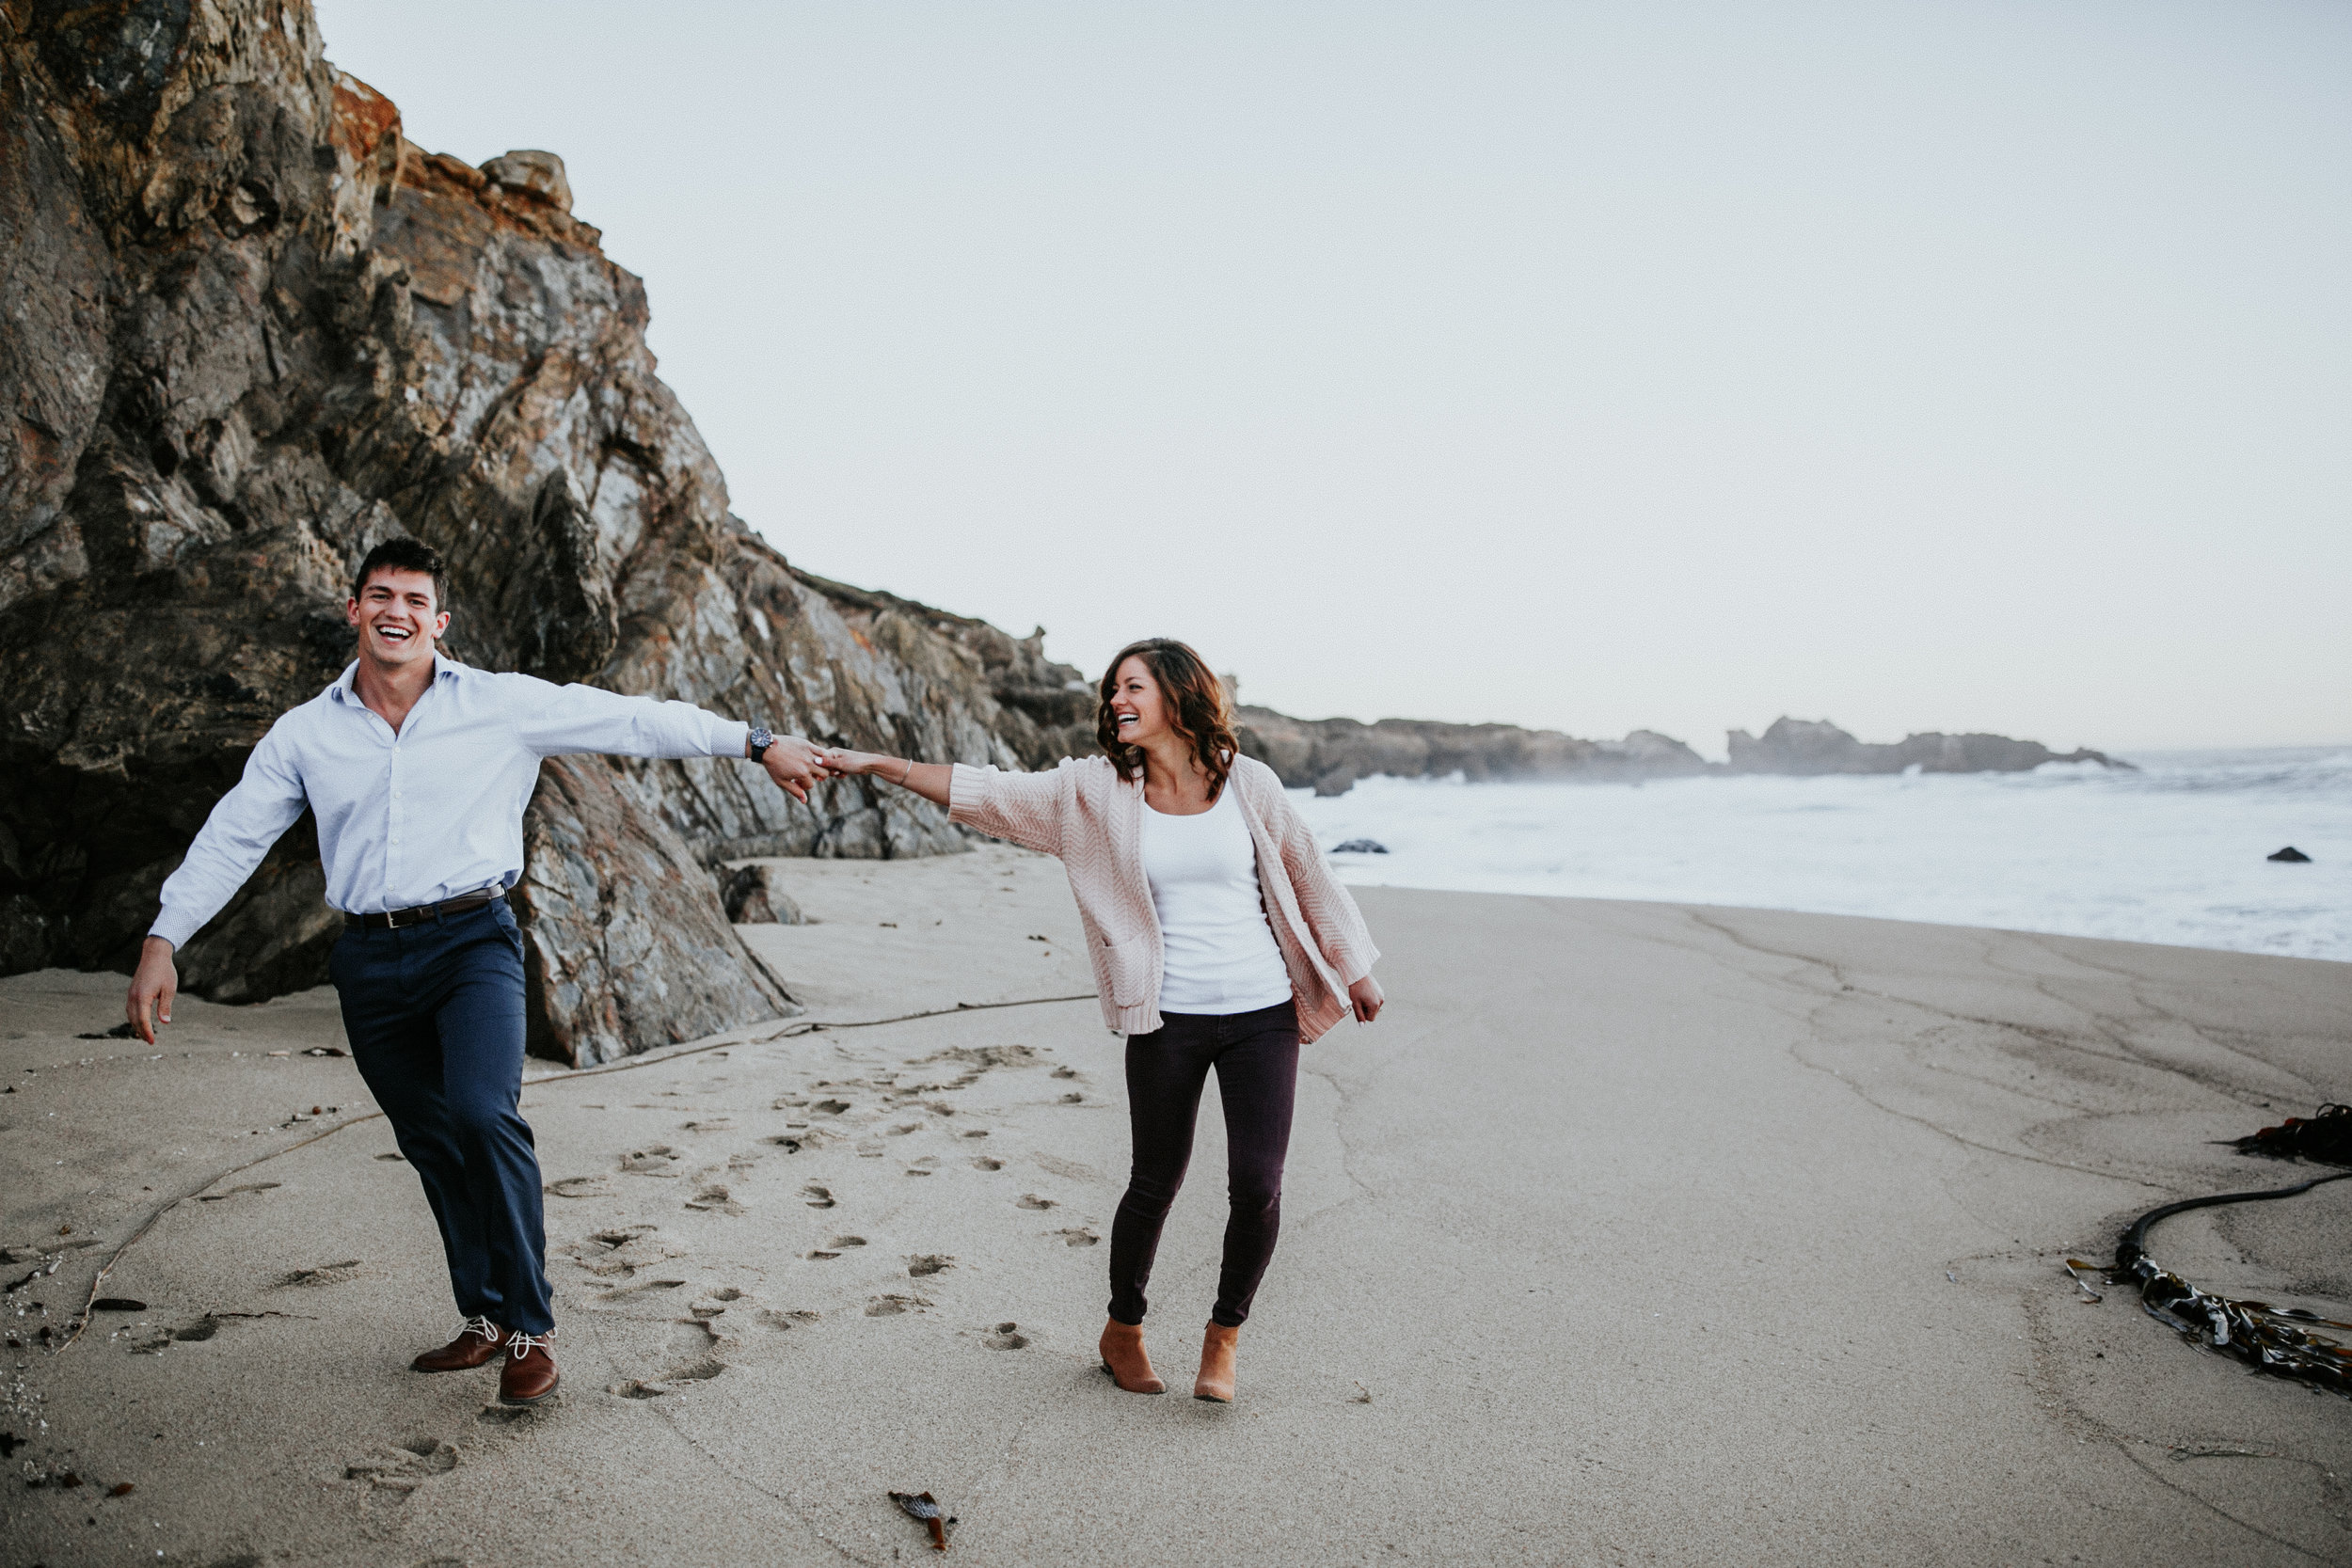 gracetphotography-destination-wedding-photographer-bigsur-adventure-elopement-1.jpg